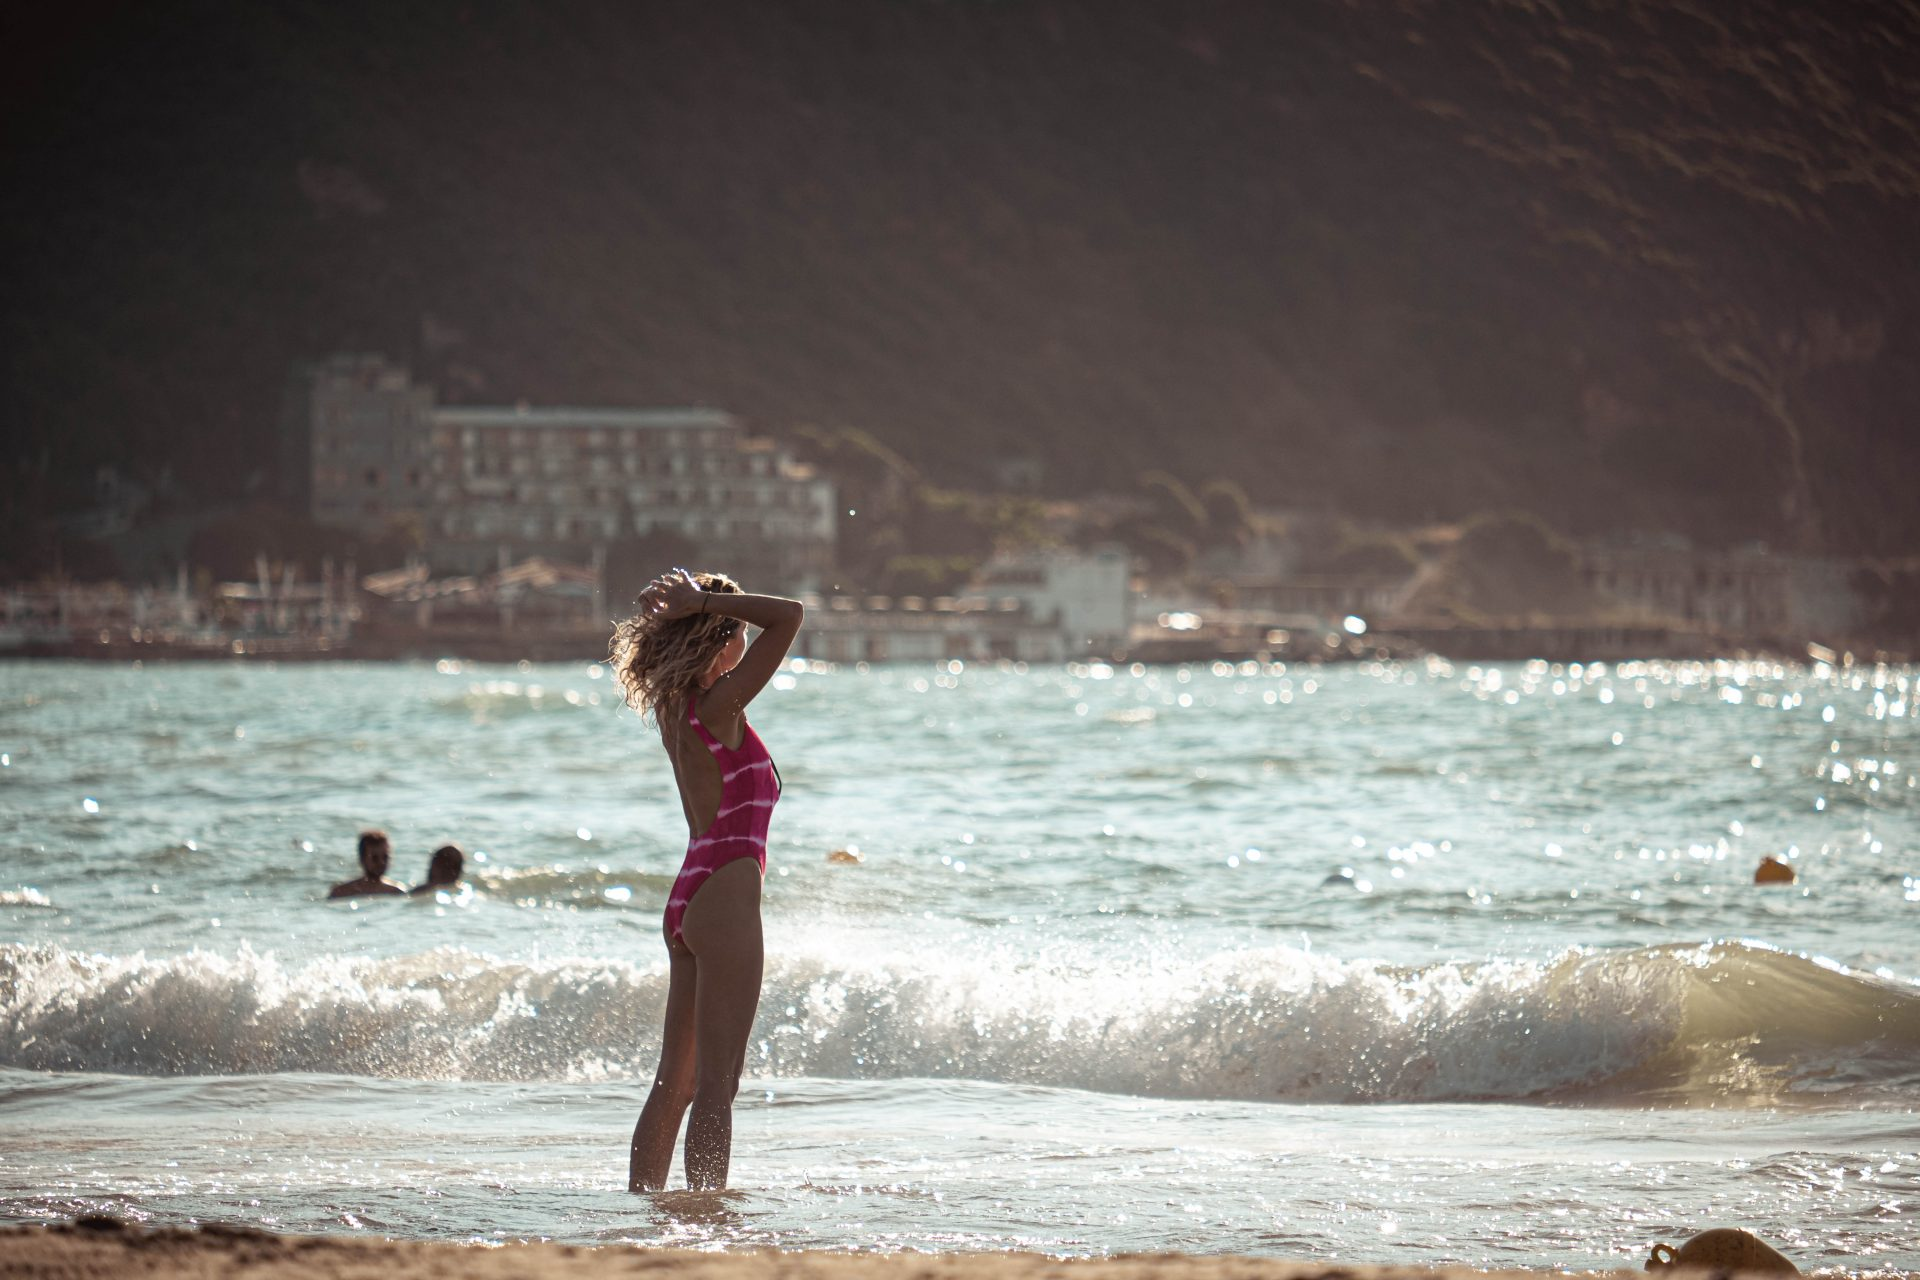 Blond women at the beach in chekaa lebanon photo by Jo Kassis